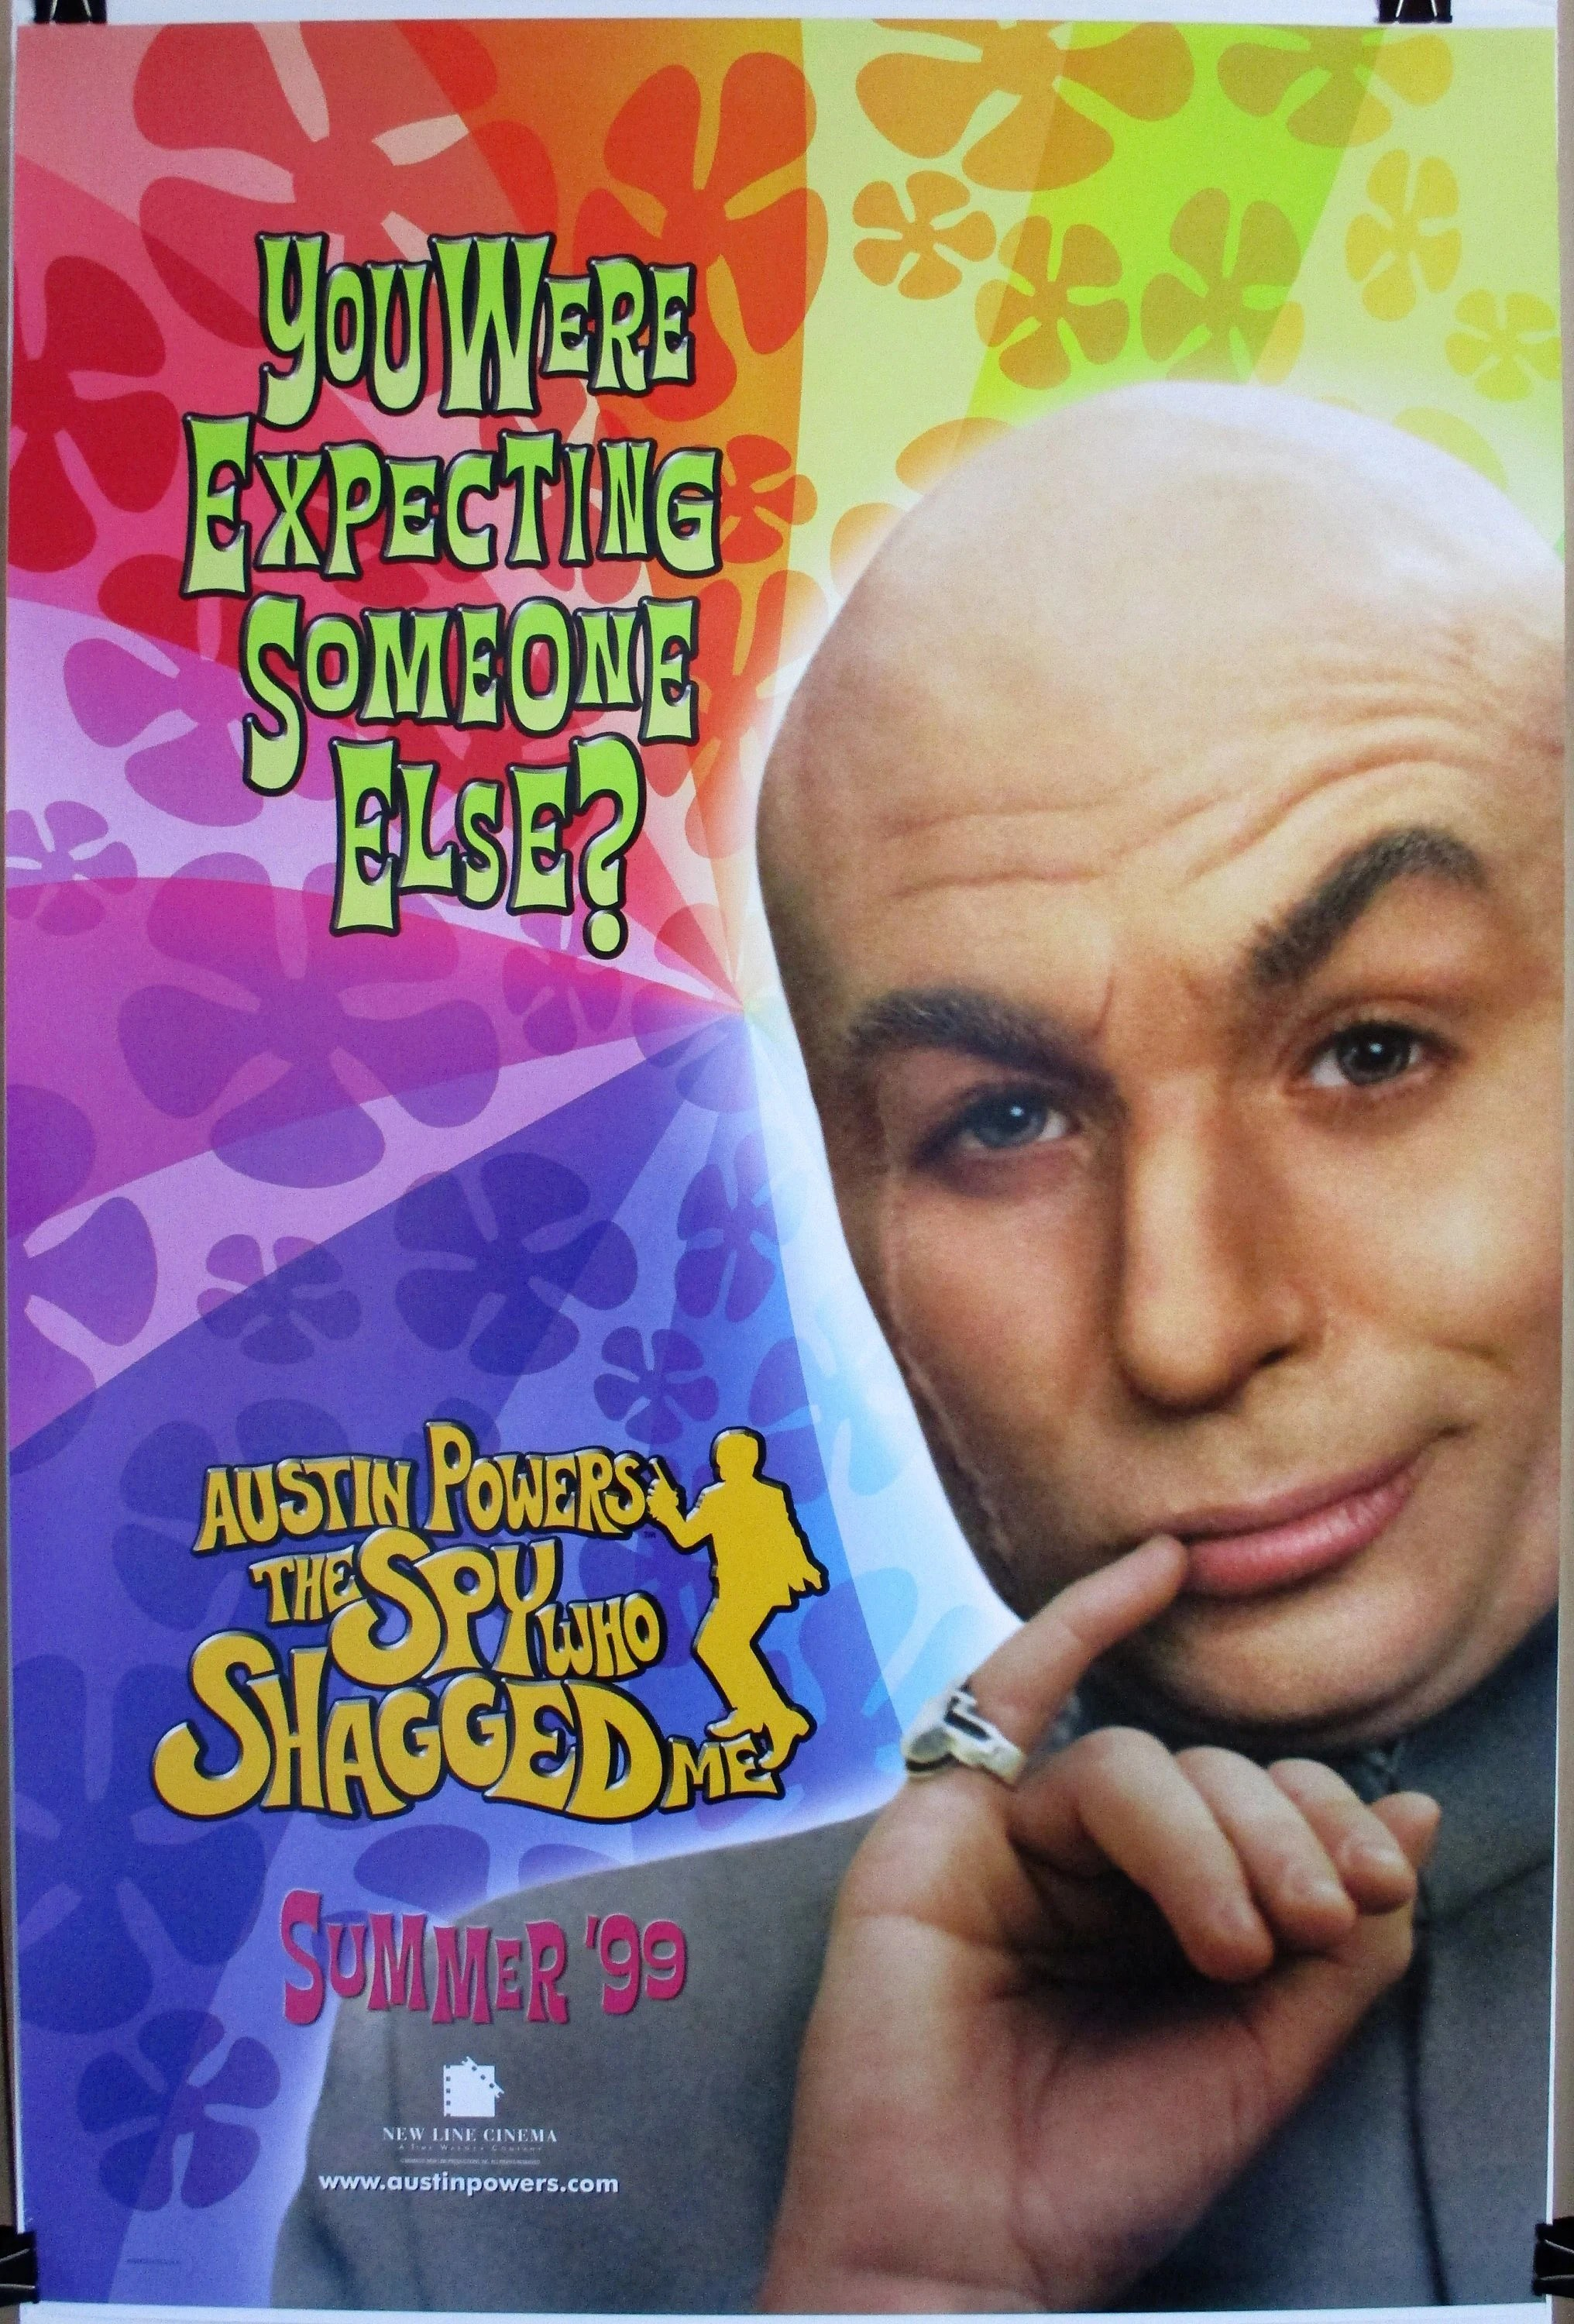 austin powers the spy who shagged me 1999 advance version original 27x40 movie poster vintage movie poster mike myers dr evil